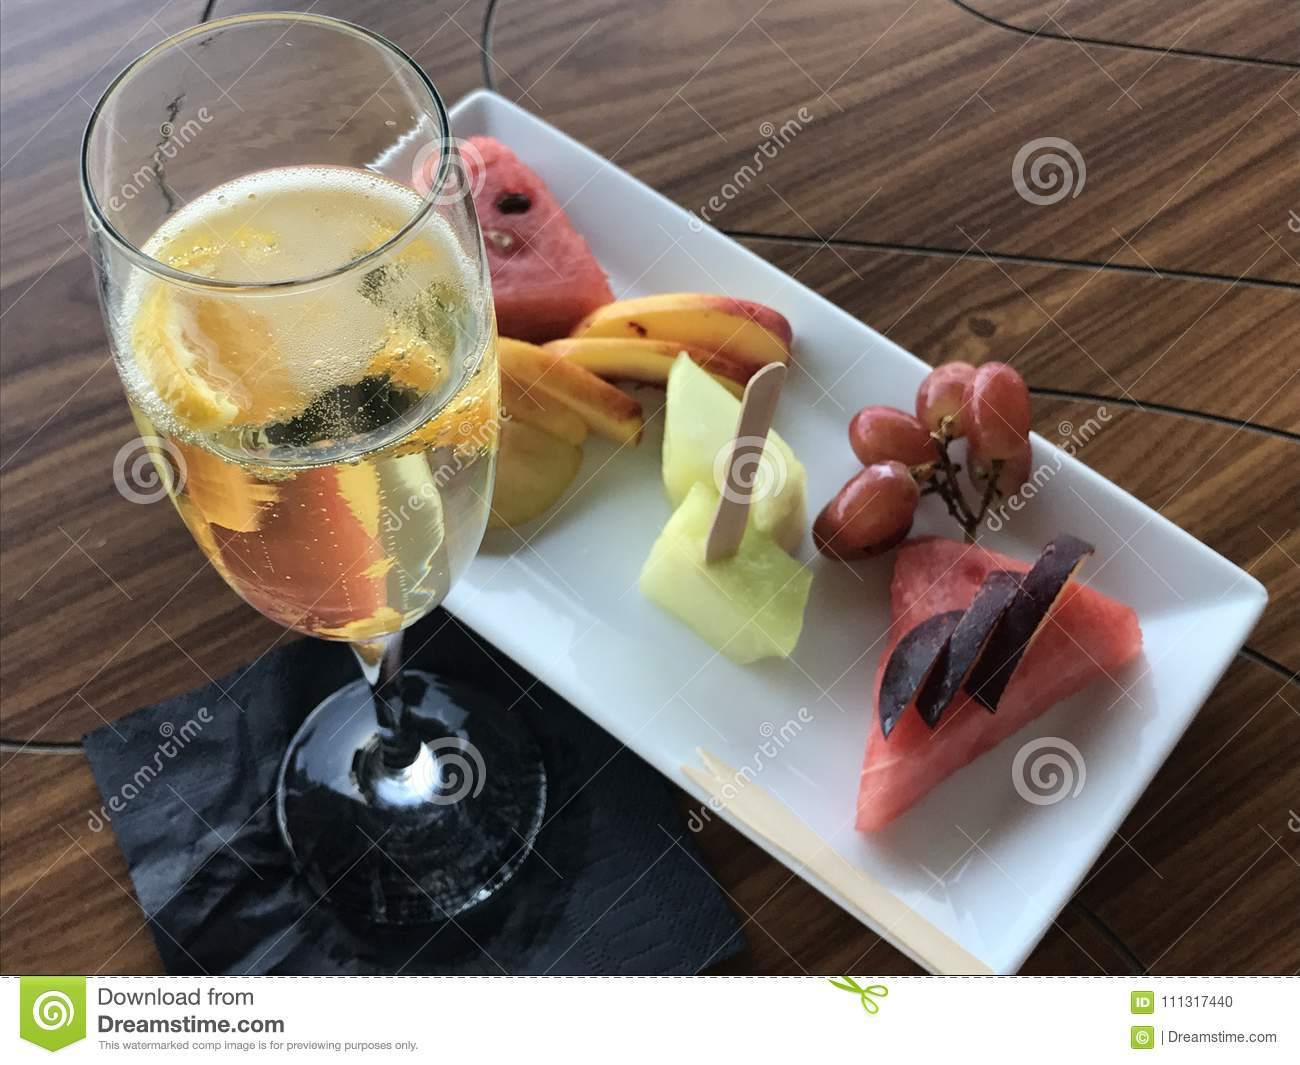 A glass of sparkling wine and fruit salad.